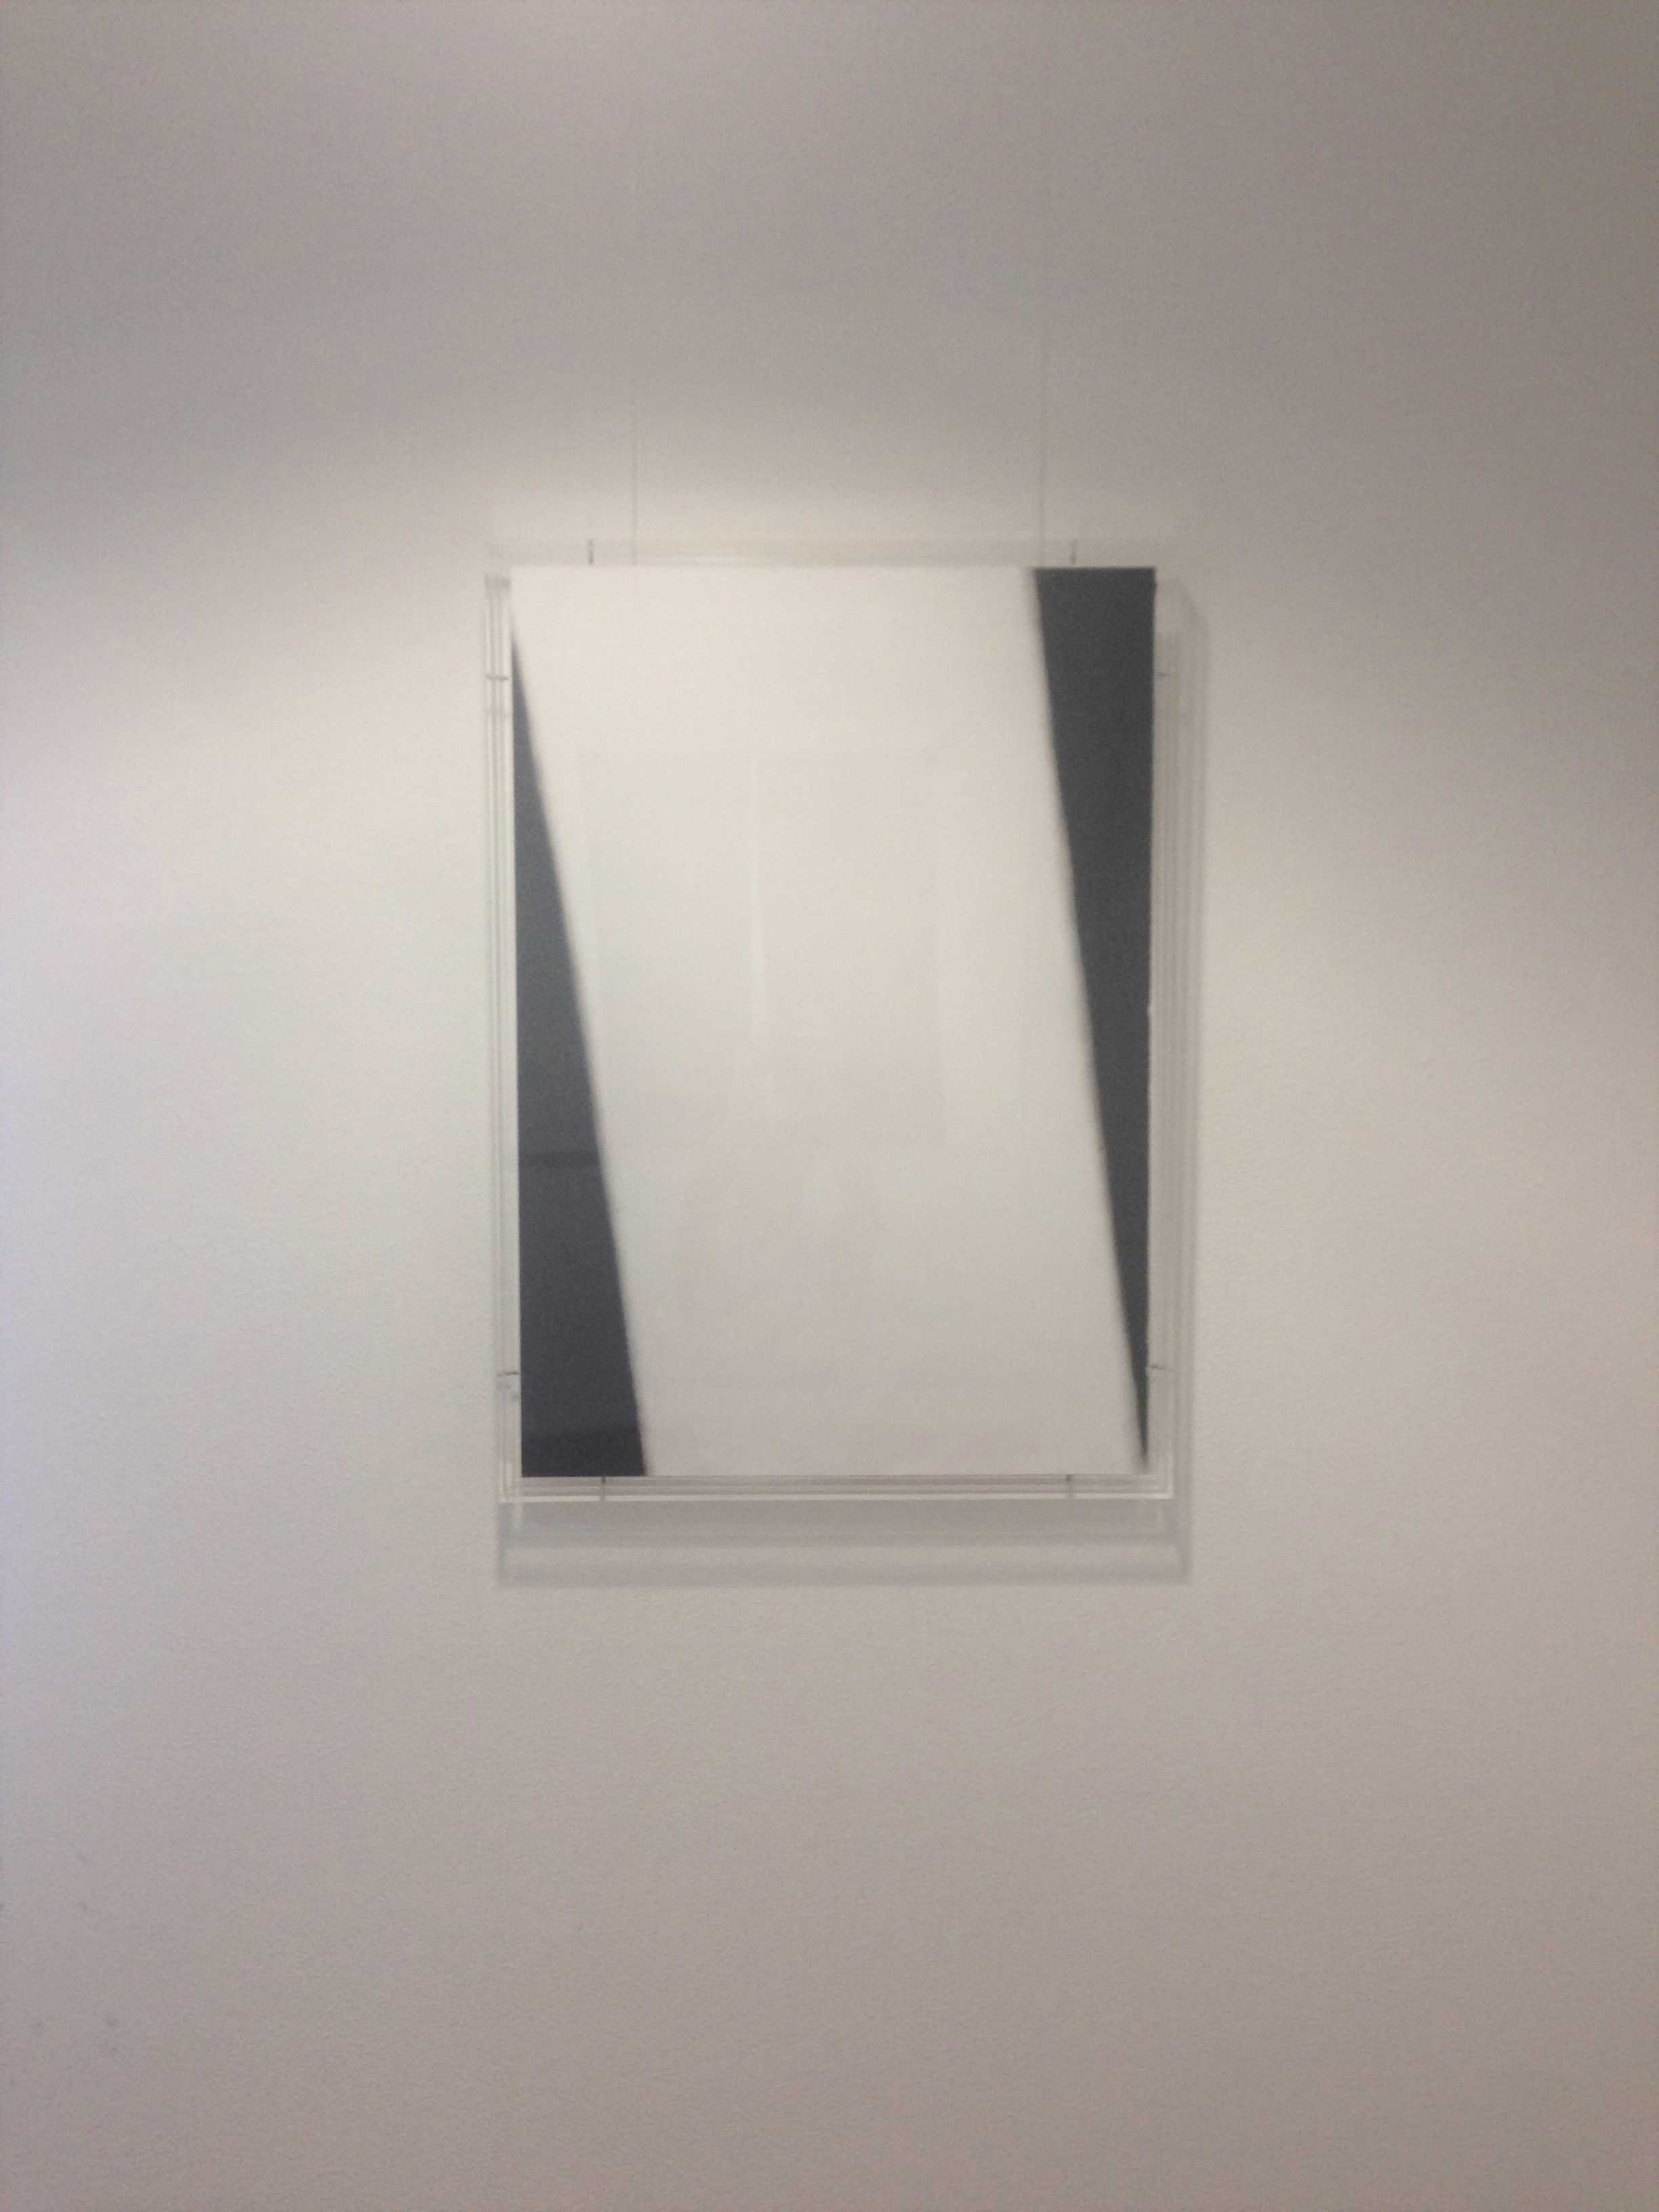 This piece is A1 in size. Its an original - charcoal on cartridge - and has been framed in a perspex box frame.